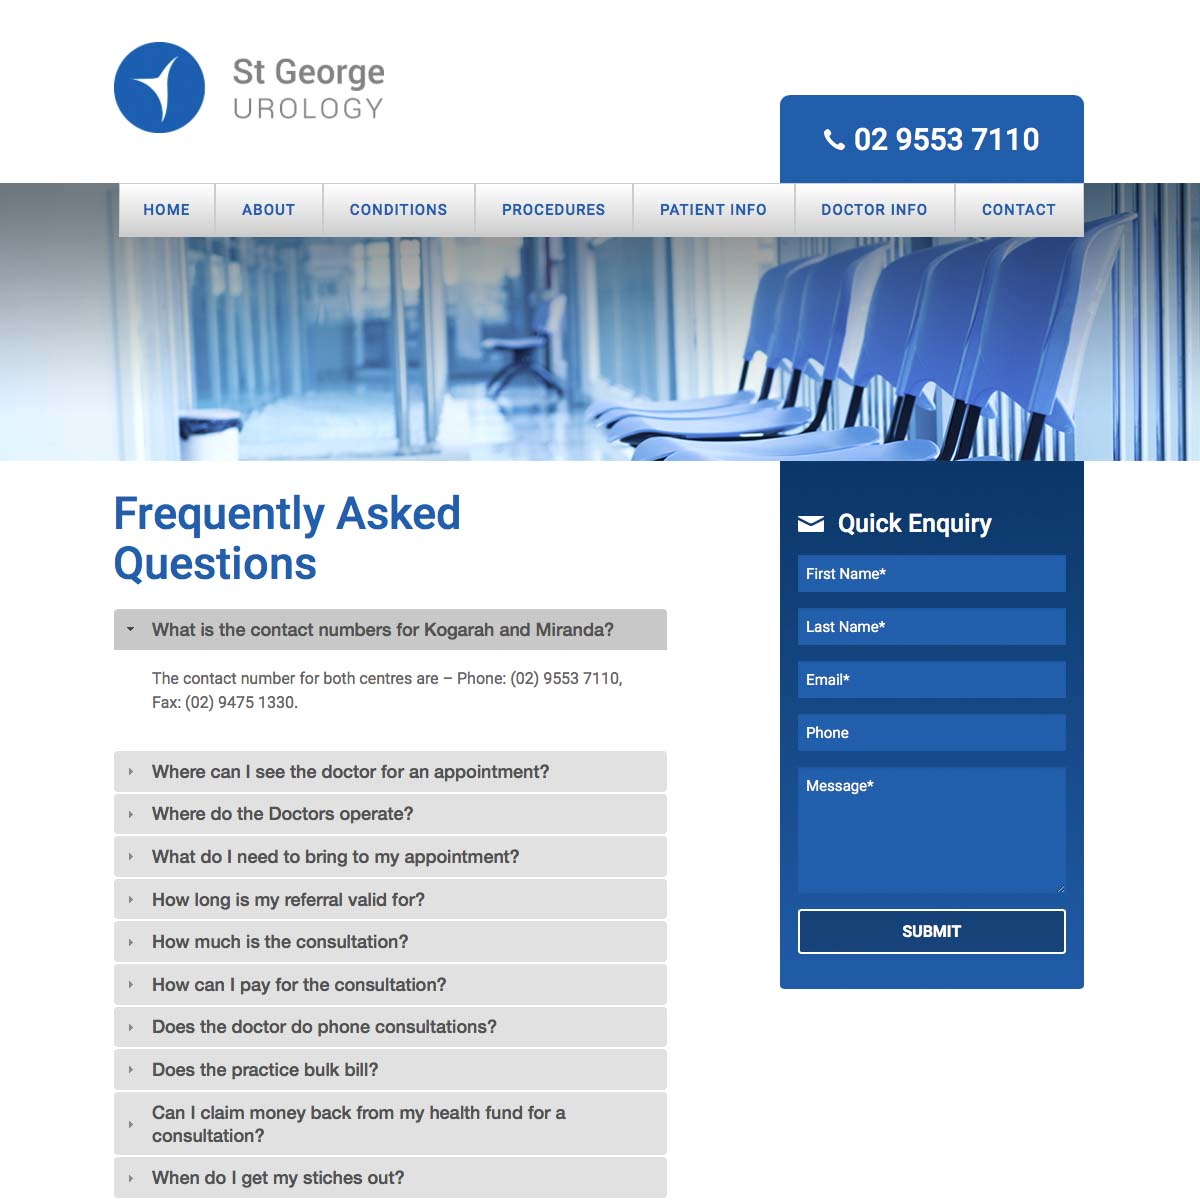 St George Urology FAQ